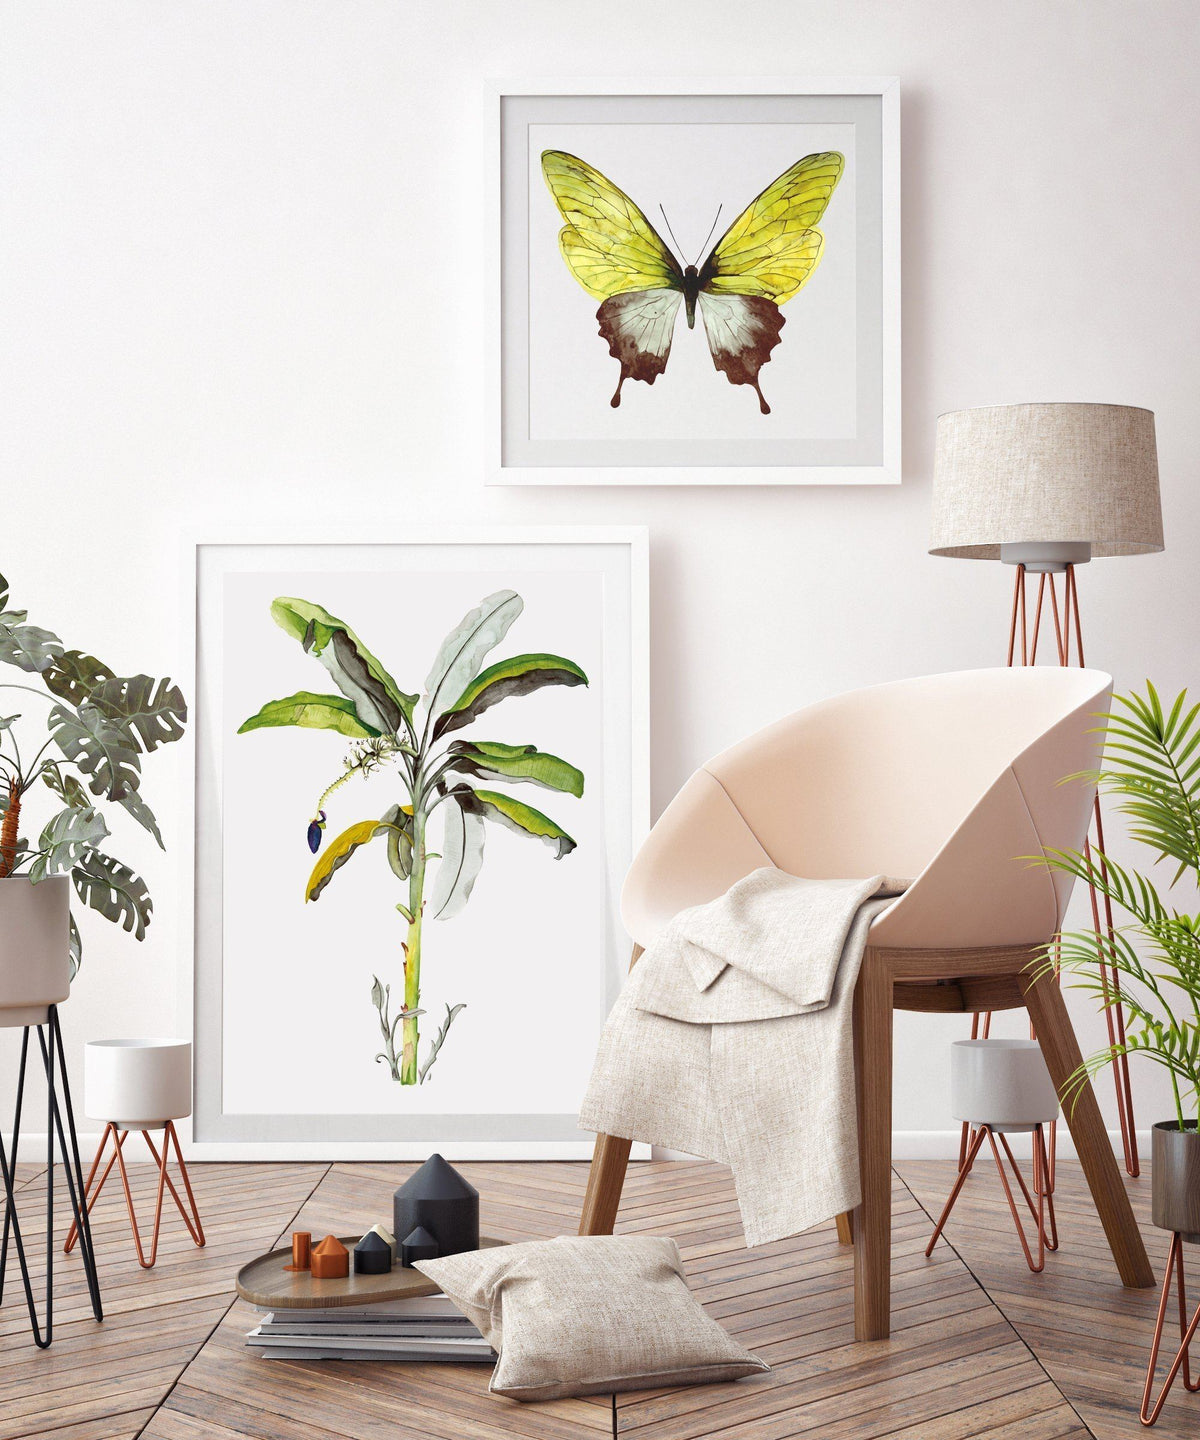 Kunstdruck - BANANA TREE Kunstdruck Leo la Douce